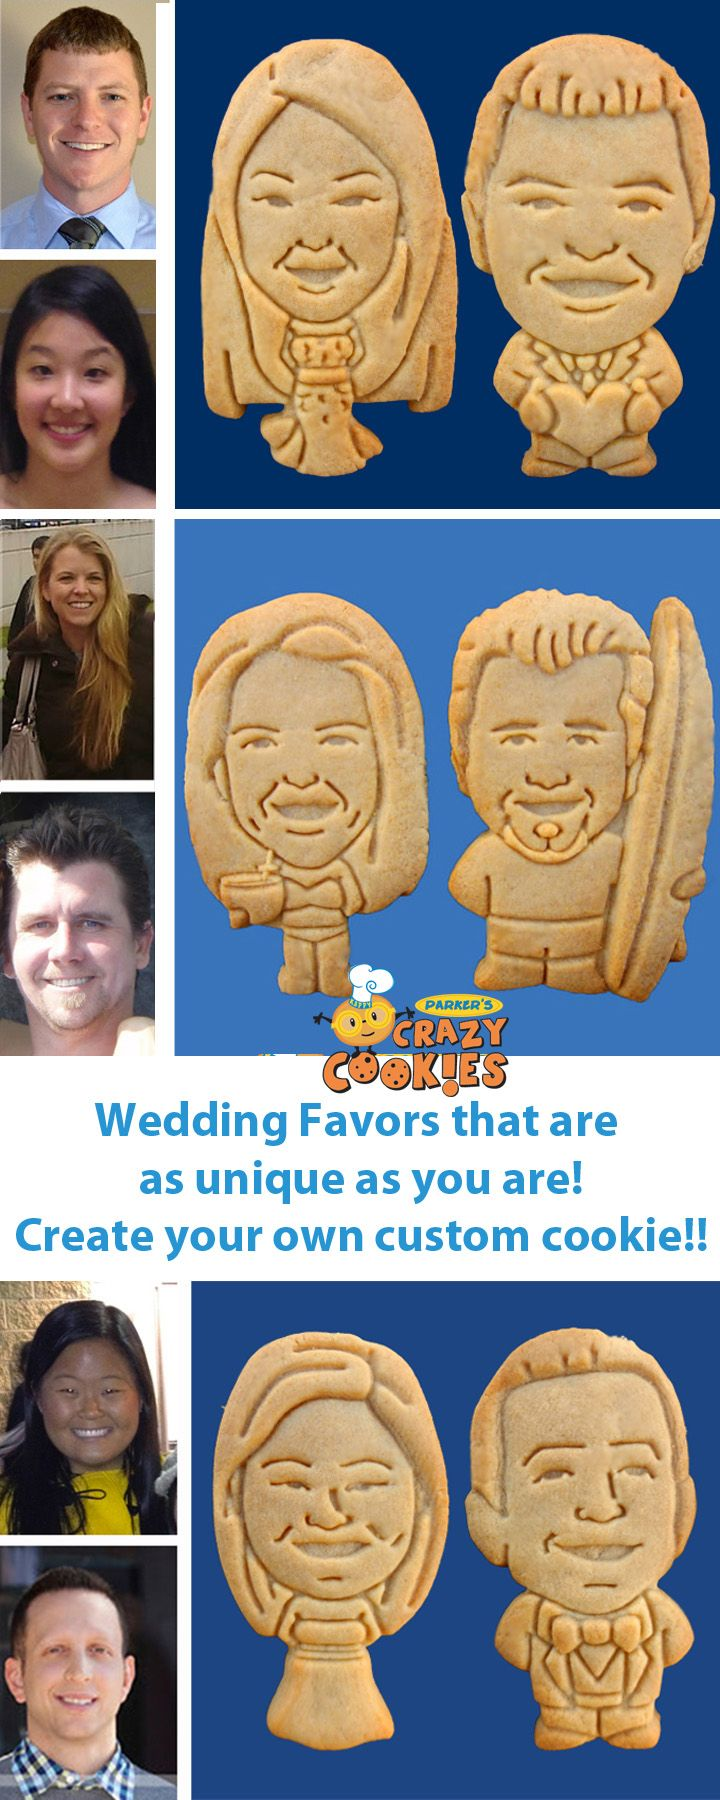 Send us your picture and we will turn you into cookies for your wedding!! Discovery the magic at www.parkerscrazycookies.com. As seen on the Today Show and the Food Network!!